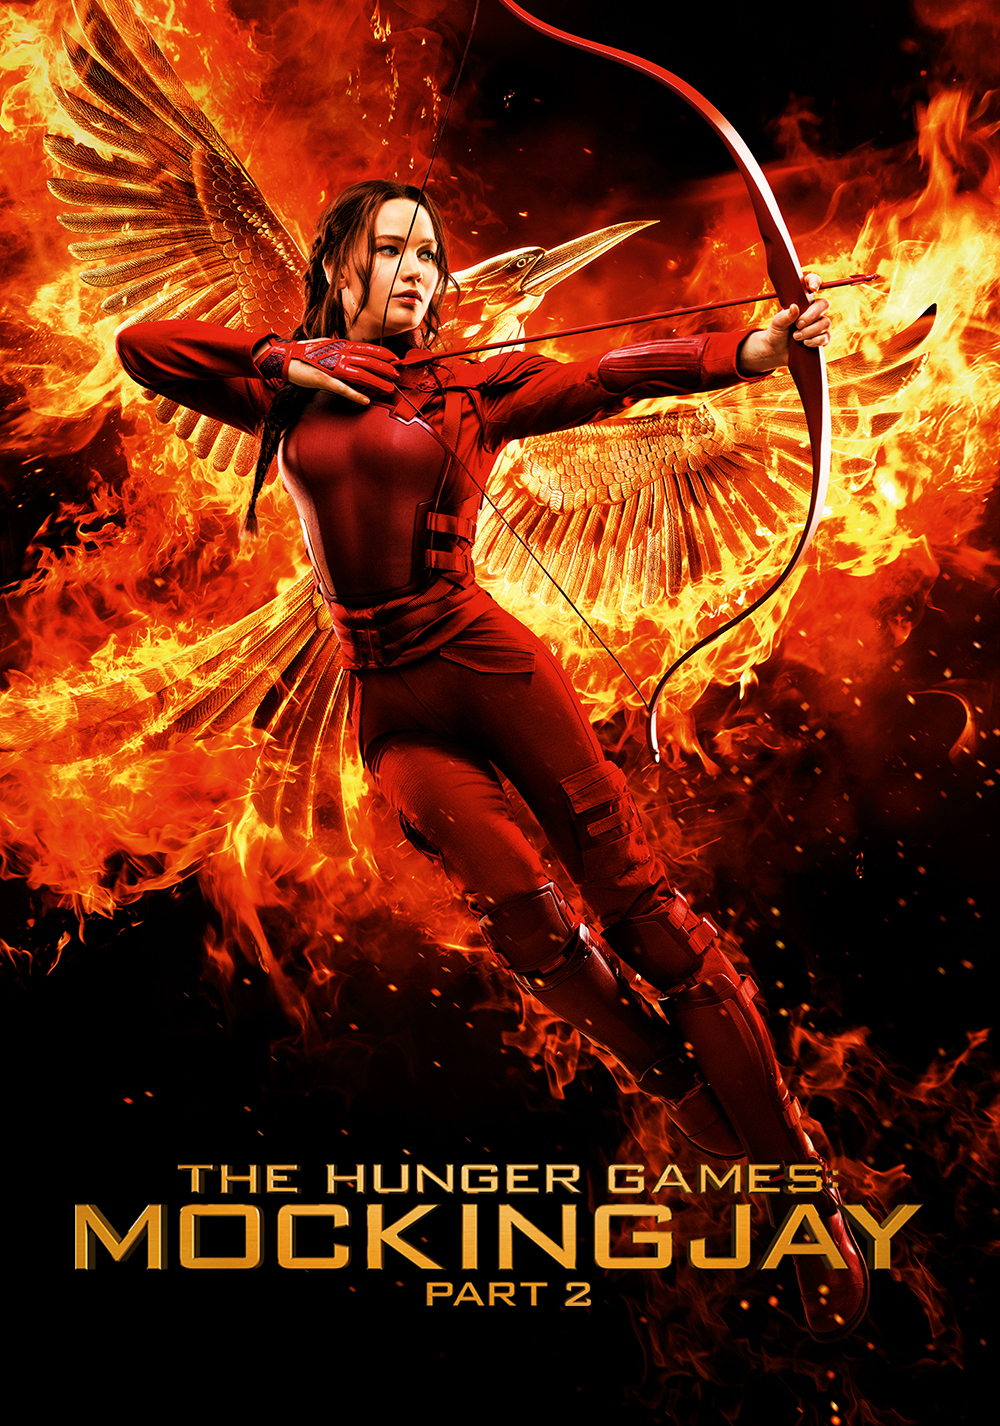 THE HUNGER GAMES MOCKINGJAY 2 (2015) TAMIL DUBBED HD